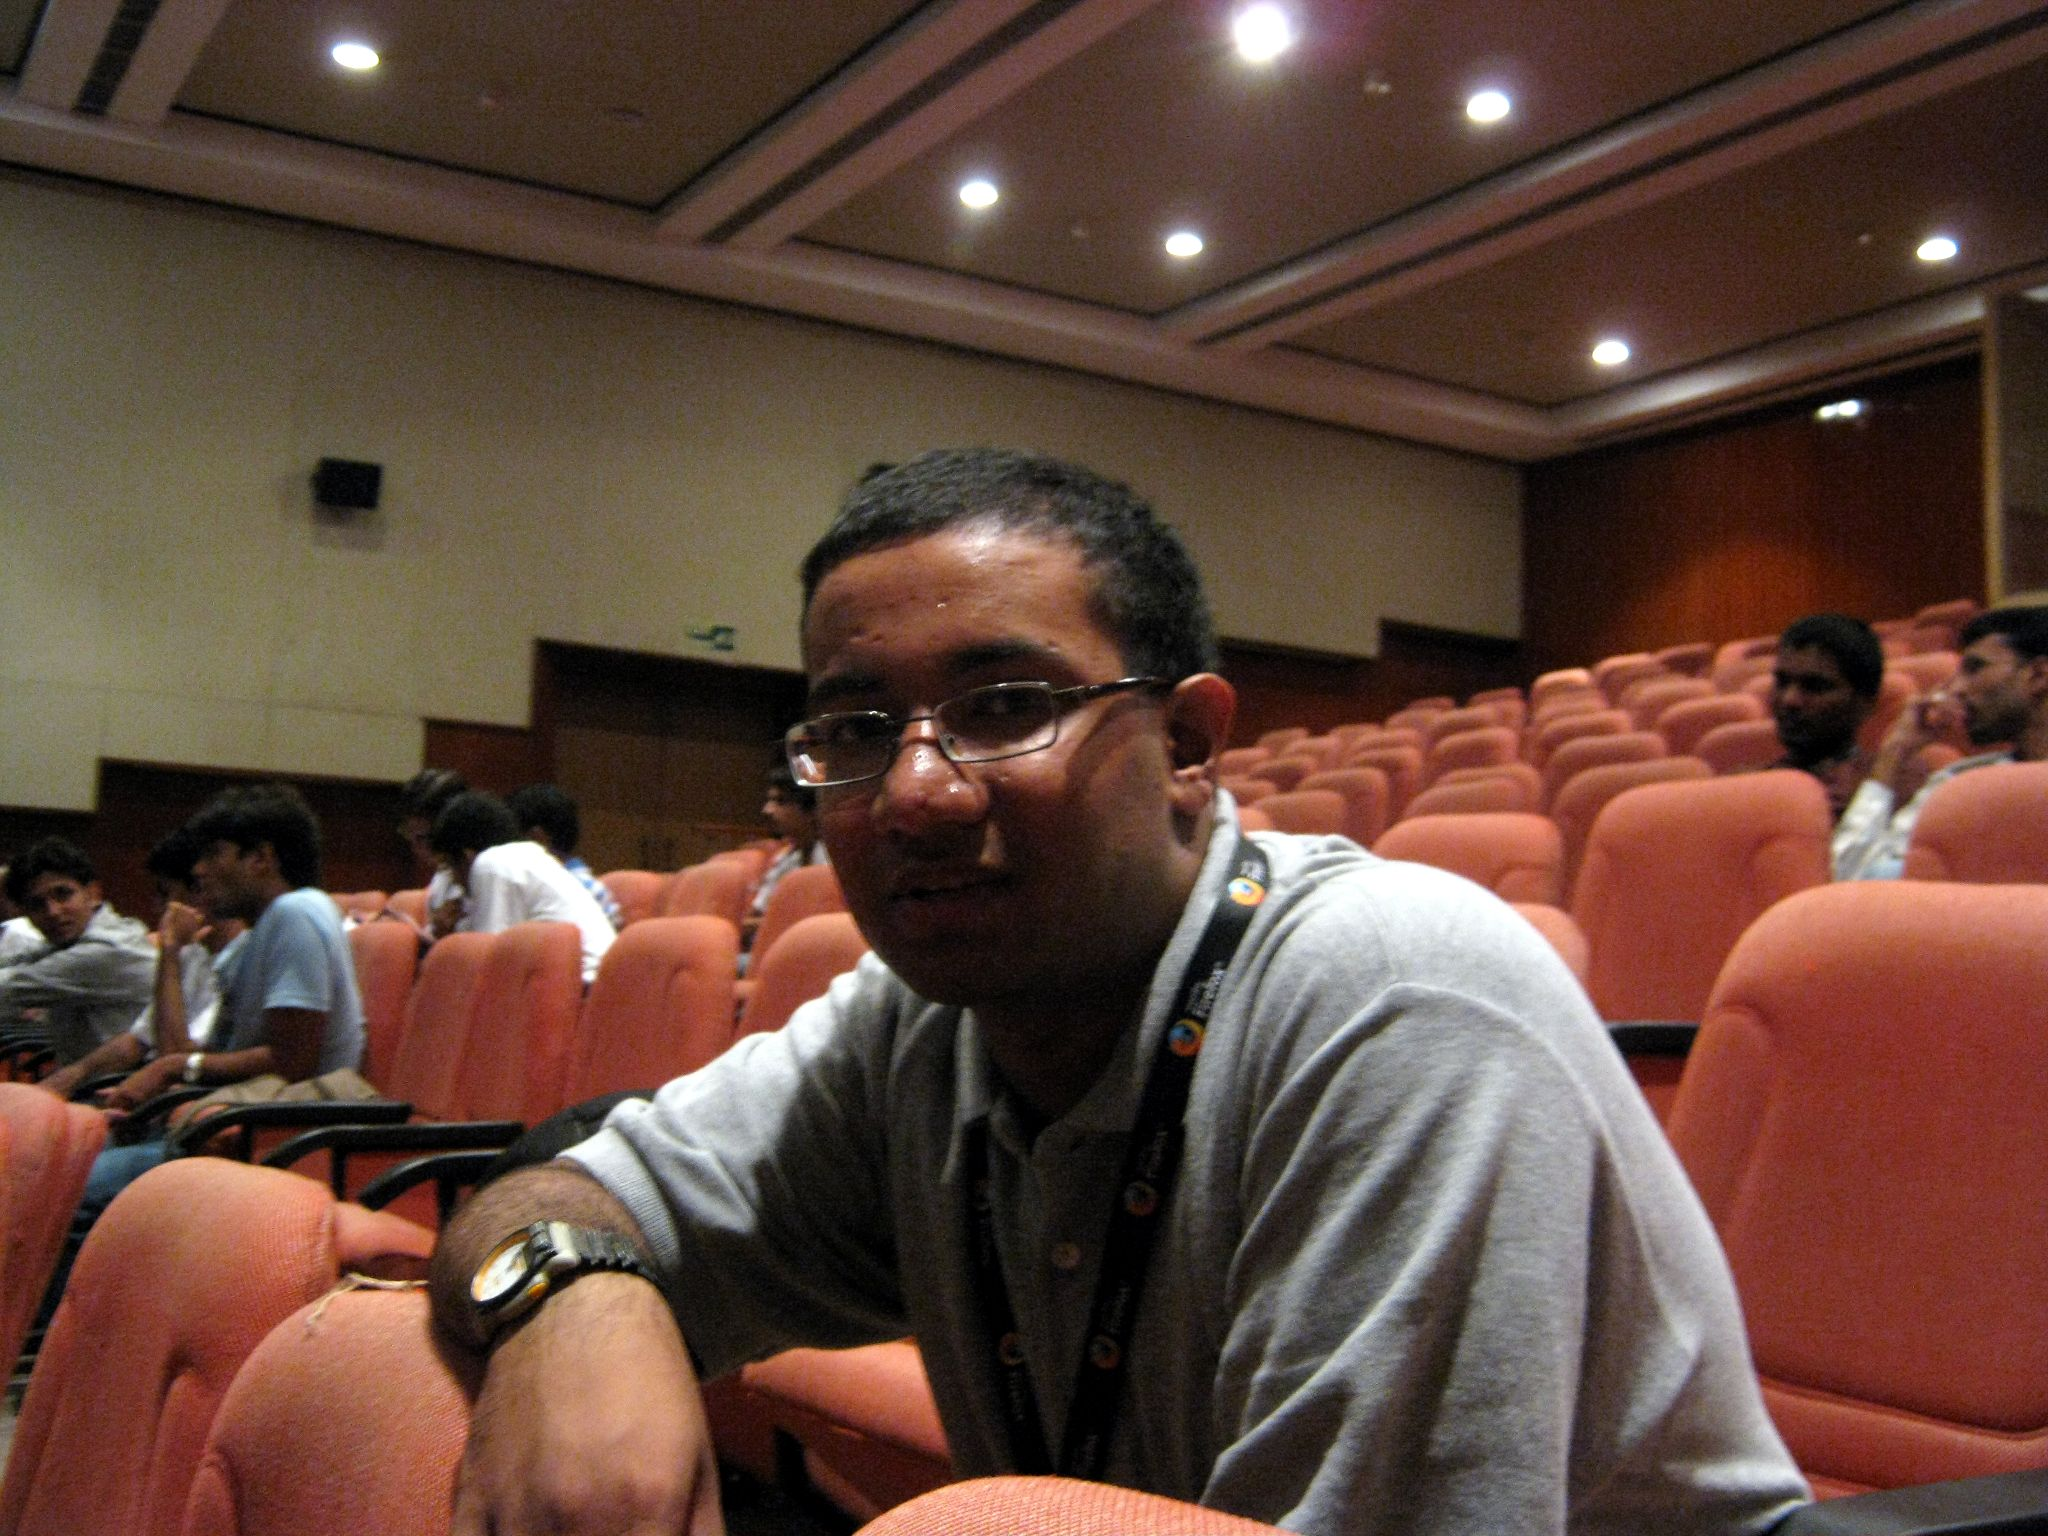 Me, at OSSCamp. Damn, those chickenpox scars just won't go away.